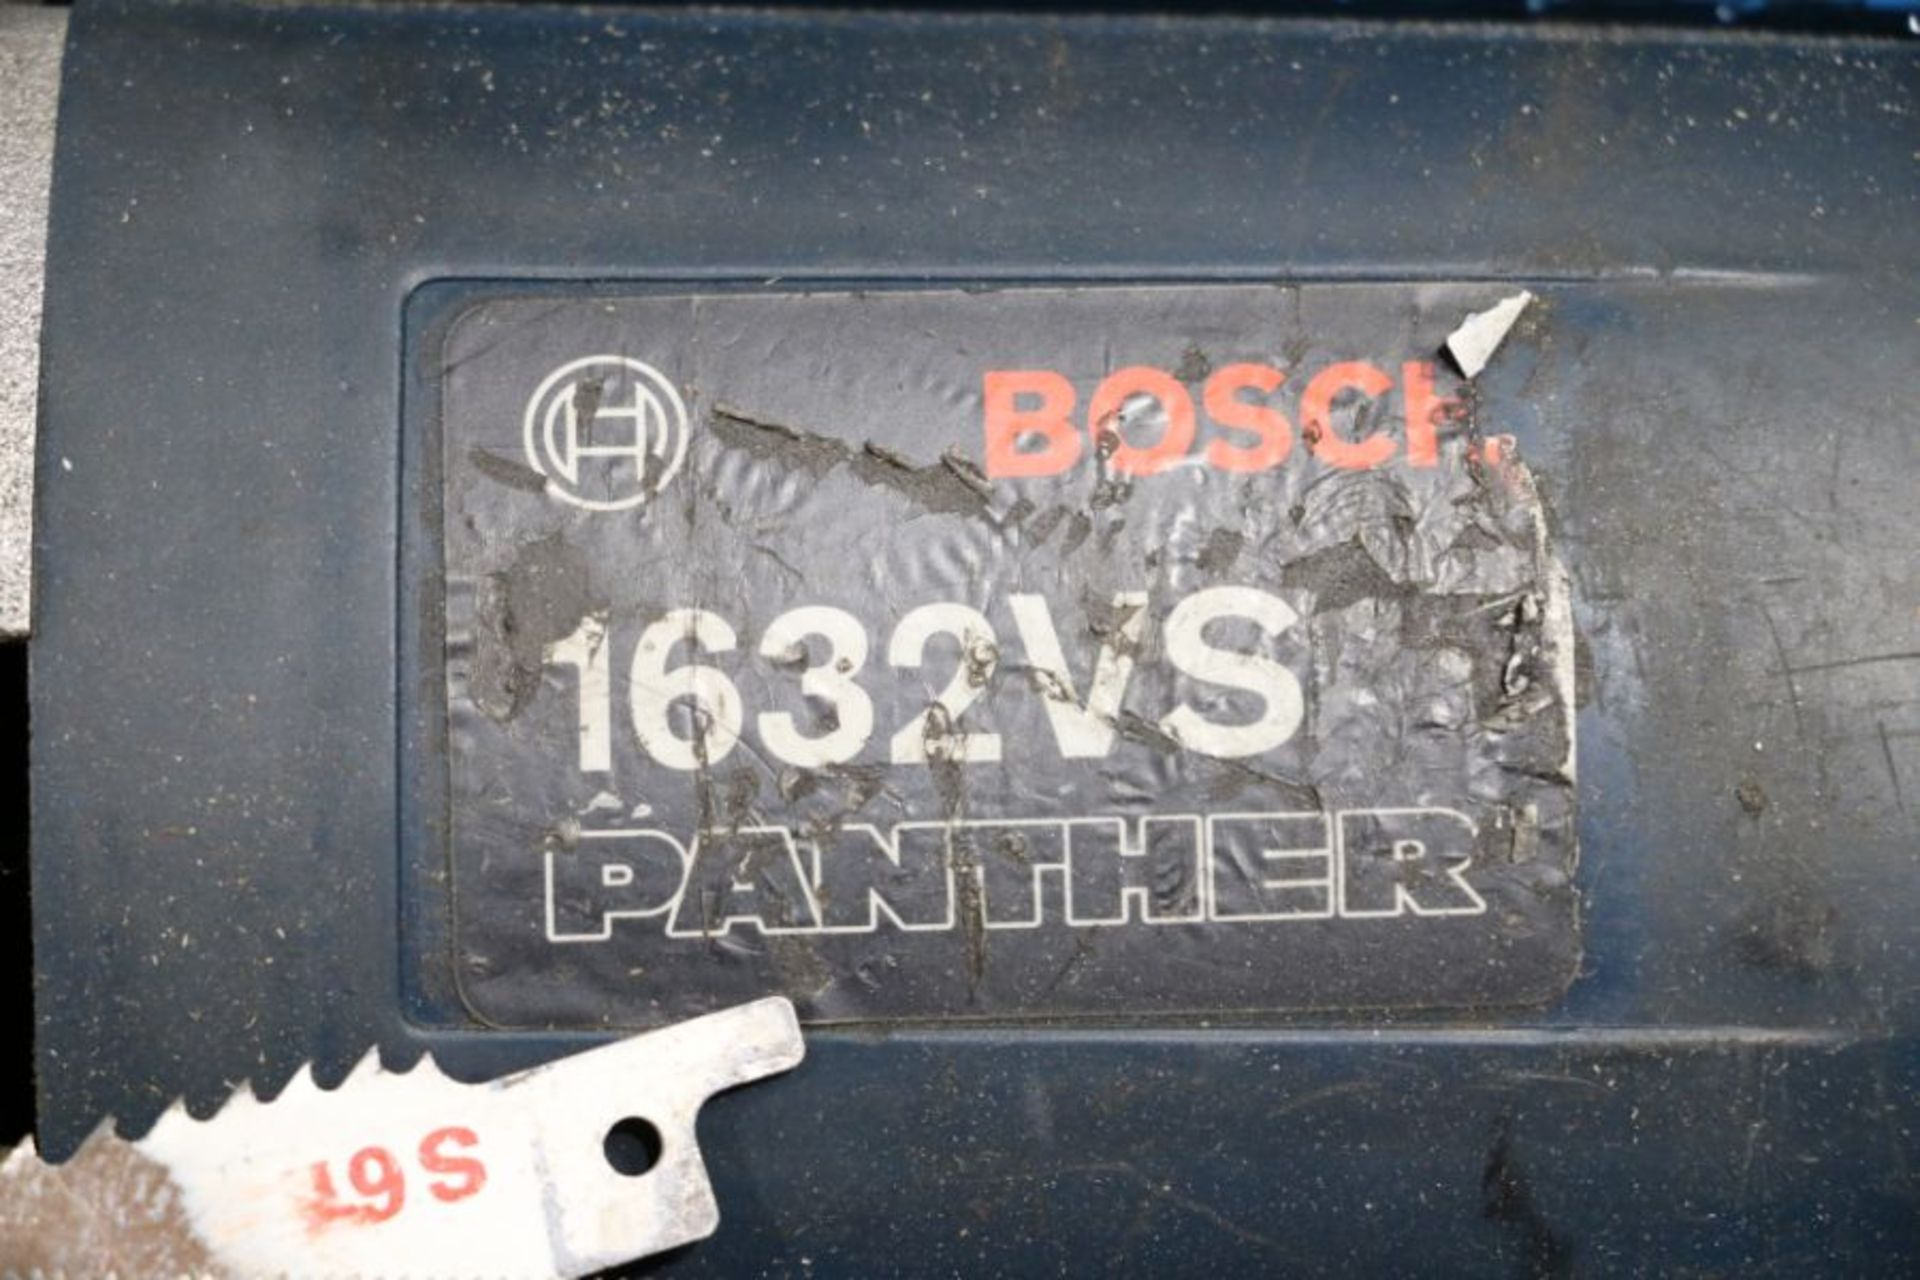 Bosch 1632VS Panther Reciprocating Saw - Image 4 of 4